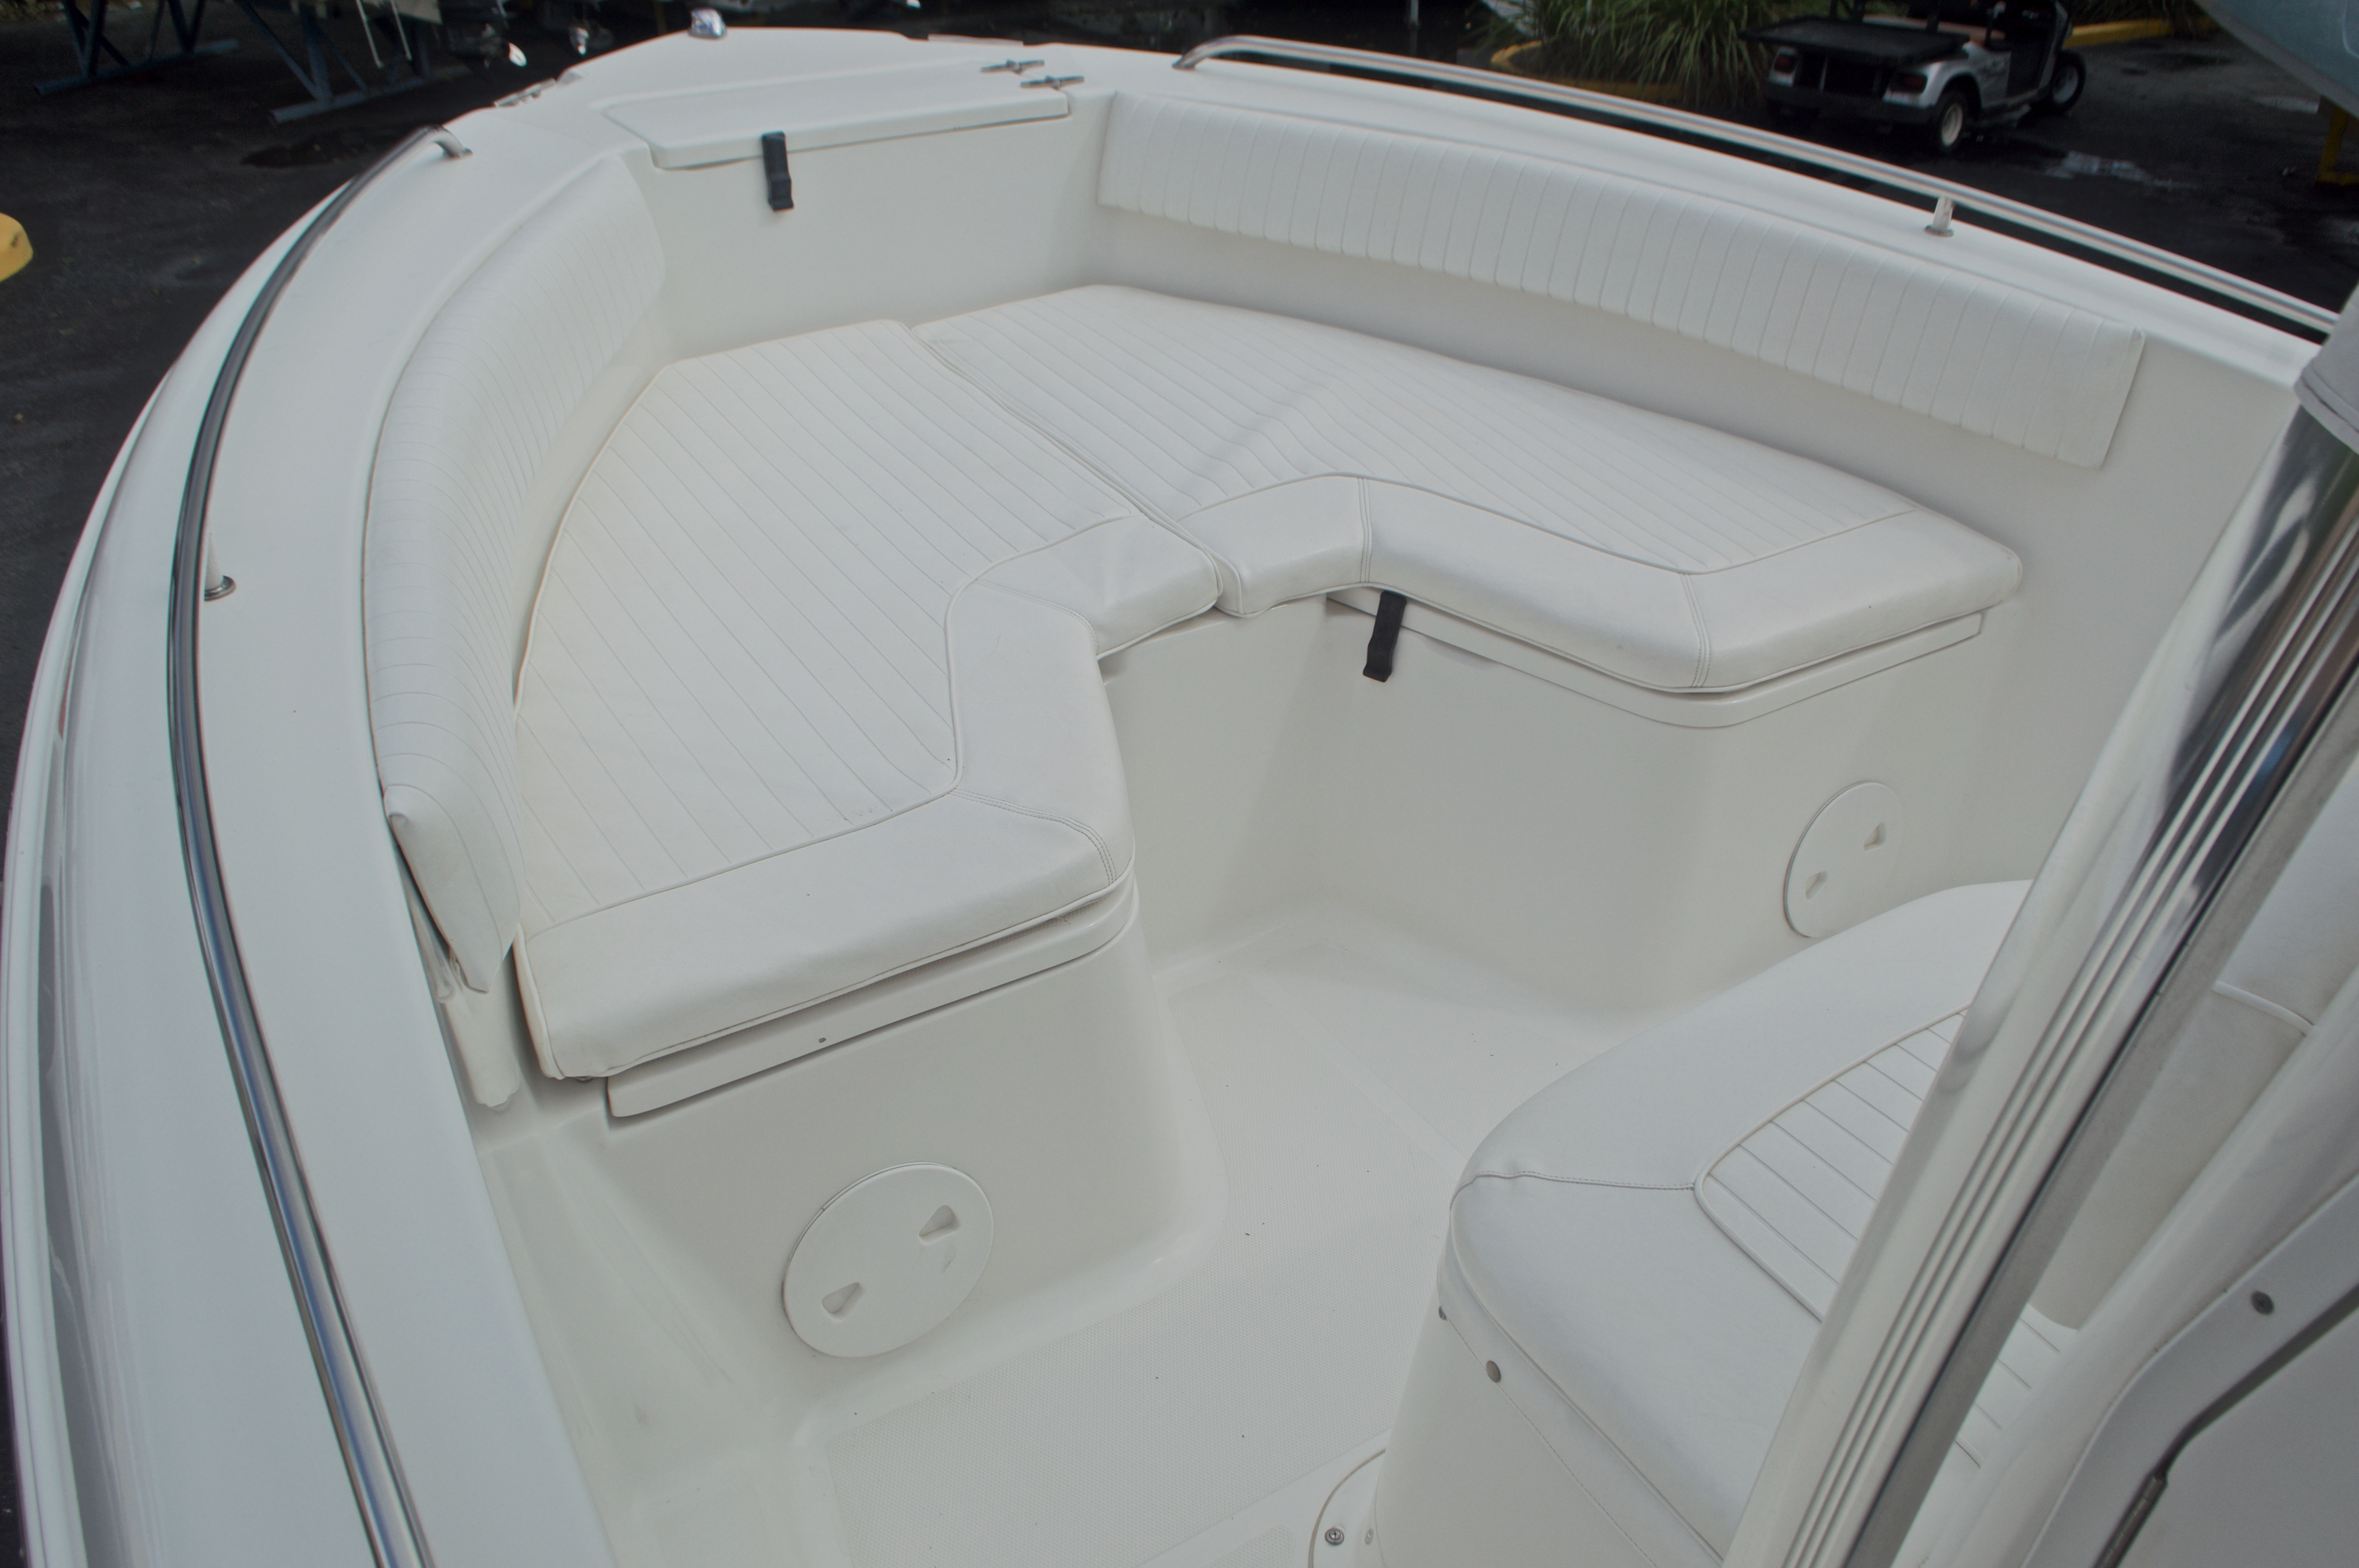 Thumbnail 48 for Used 2009 Sea Hunt 207 Triton boat for sale in West Palm Beach, FL